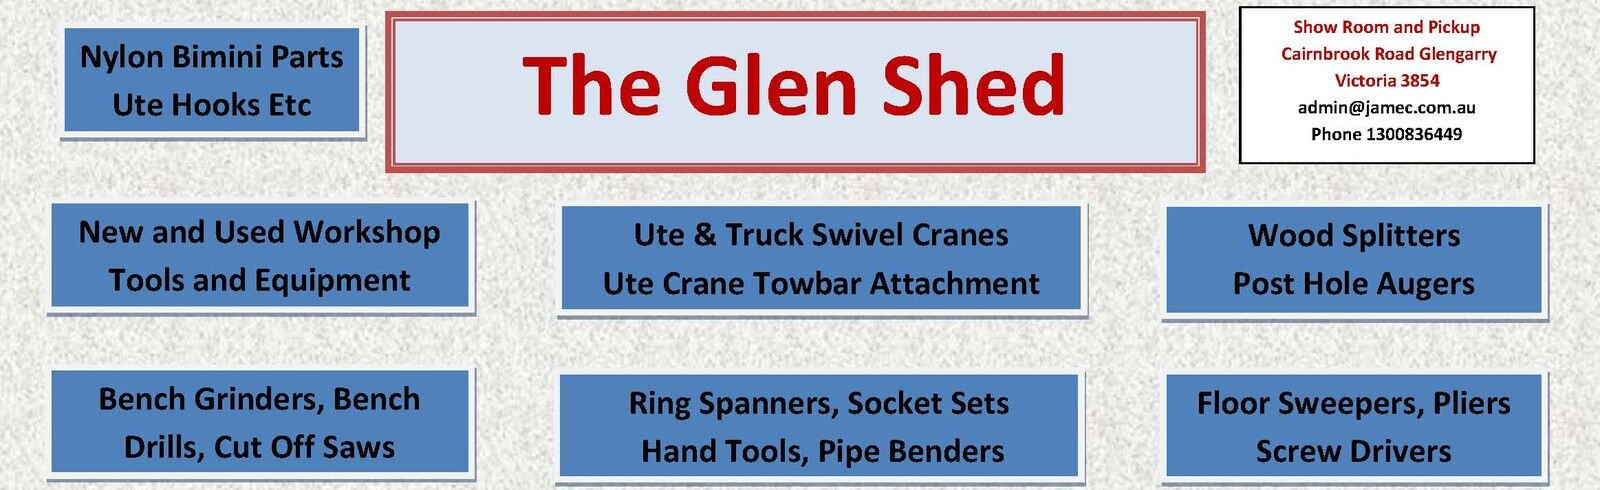 The Glen Shed